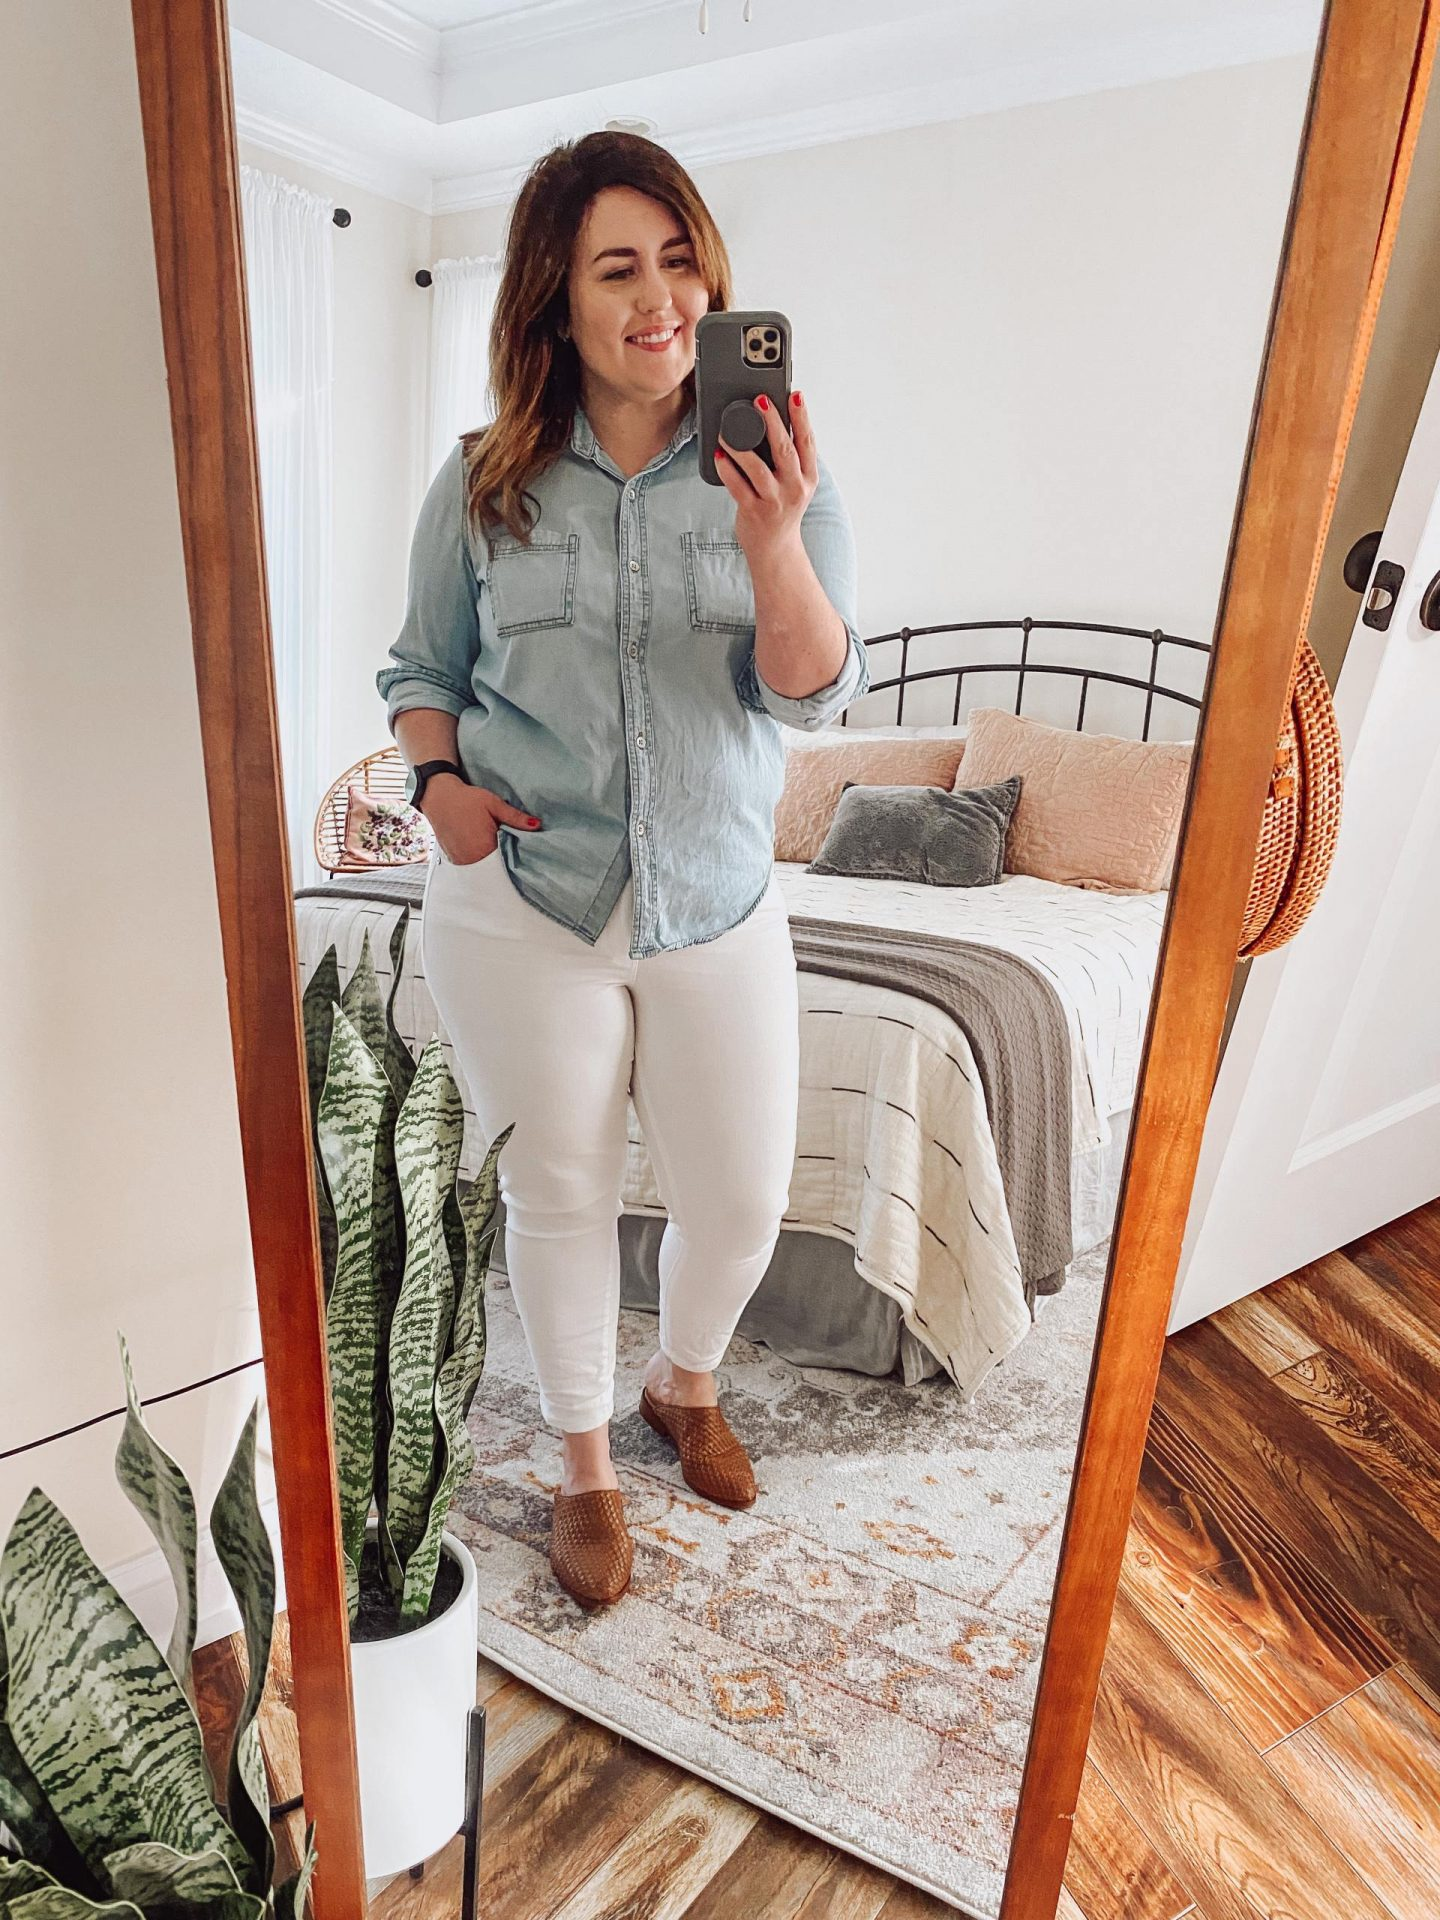 NC blogger Rebecca Lately is sharing some of her recent workwear outfits after heading back to the office full time!